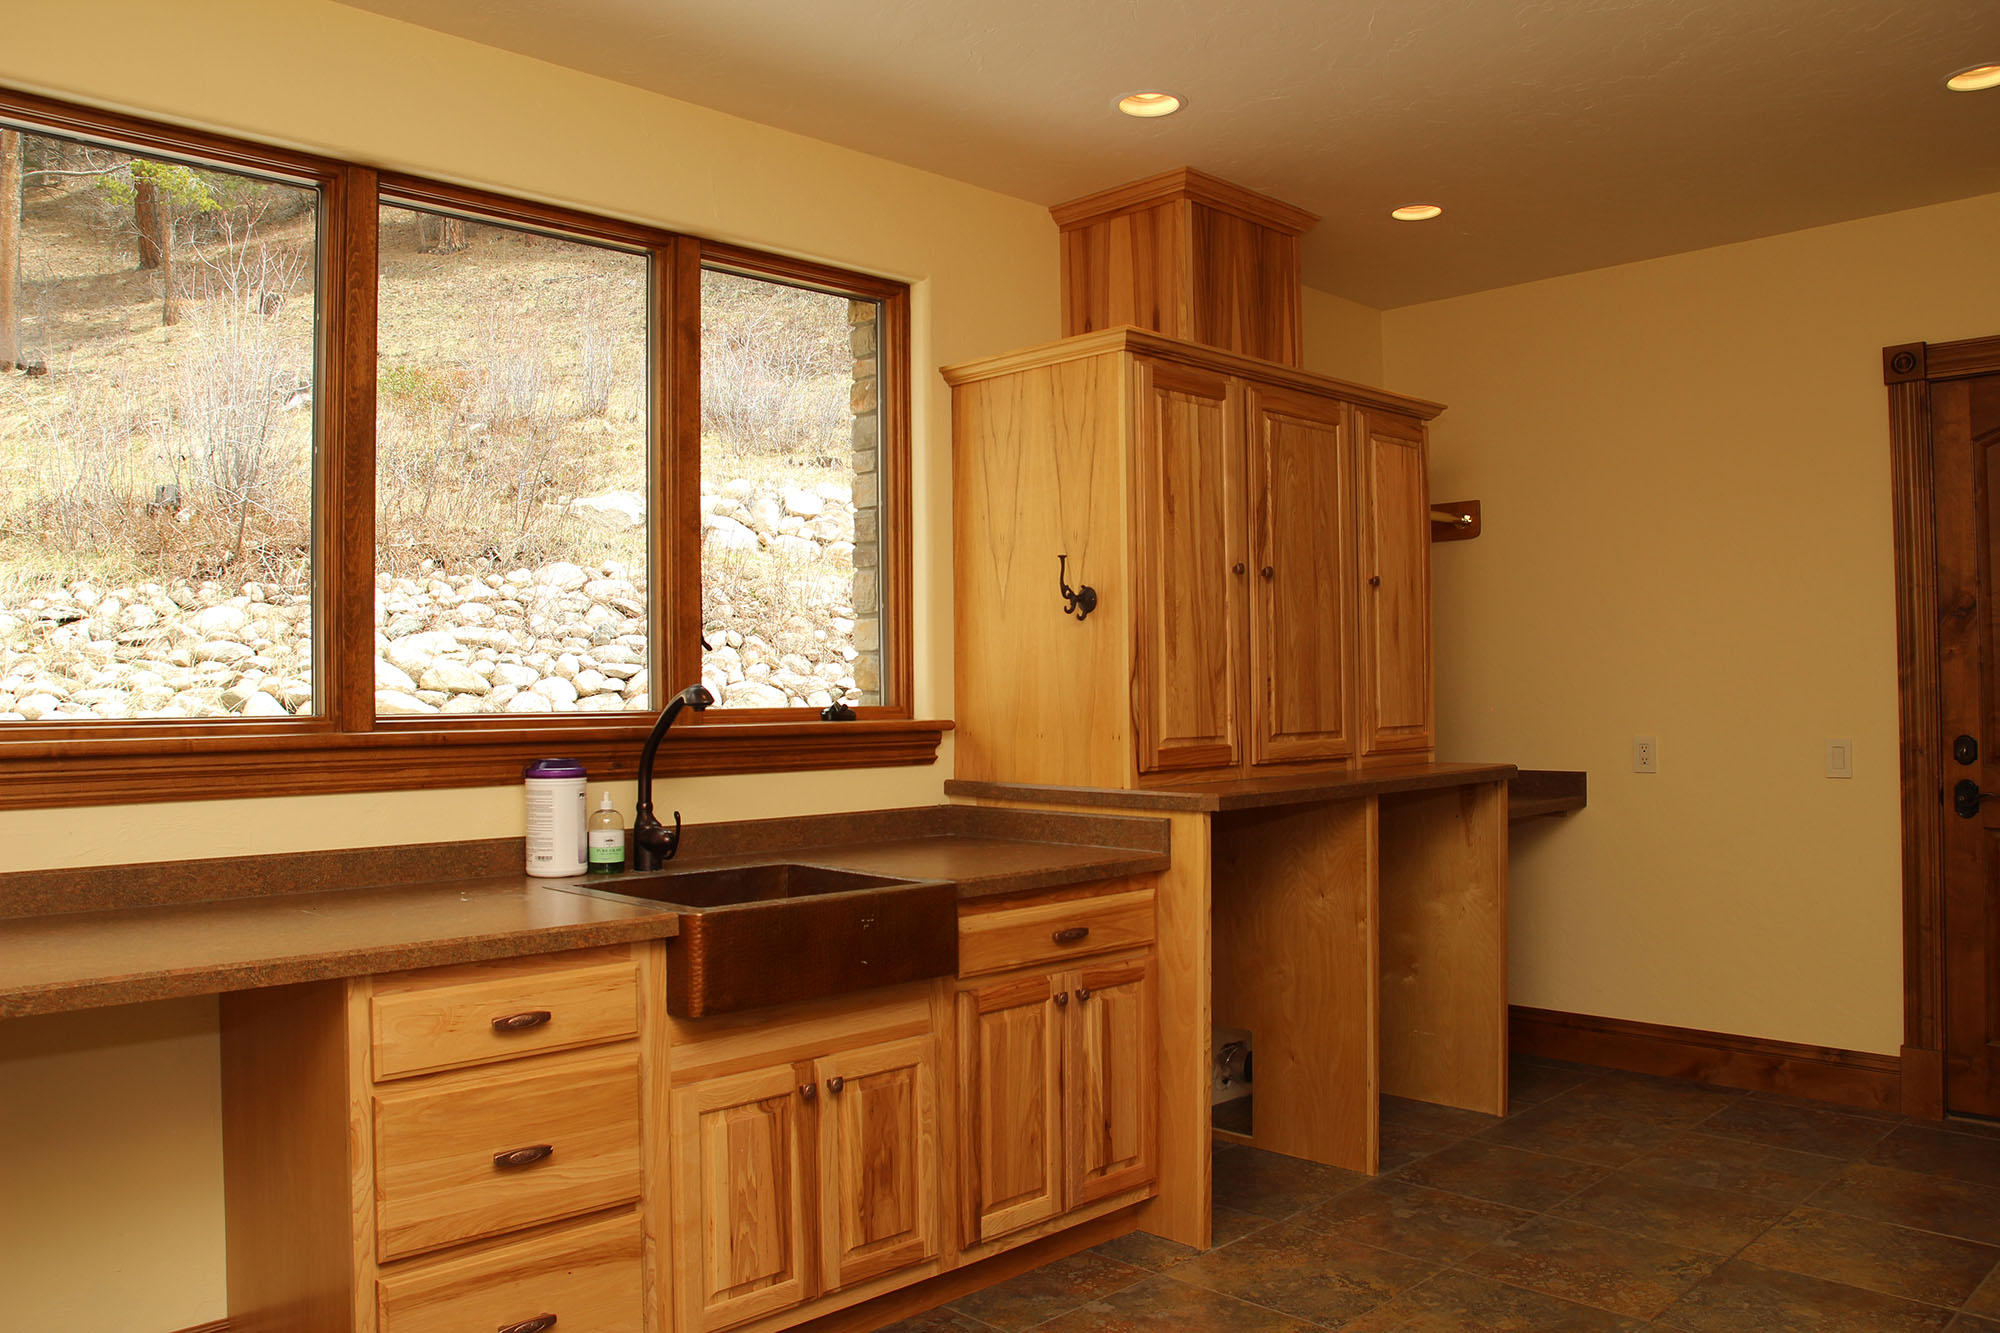 271 North Piney Road, Story, Wyoming 82842, 5 Bedrooms Bedrooms, ,3.5 BathroomsBathrooms,Ranch,For Sale,North Piney,18-471